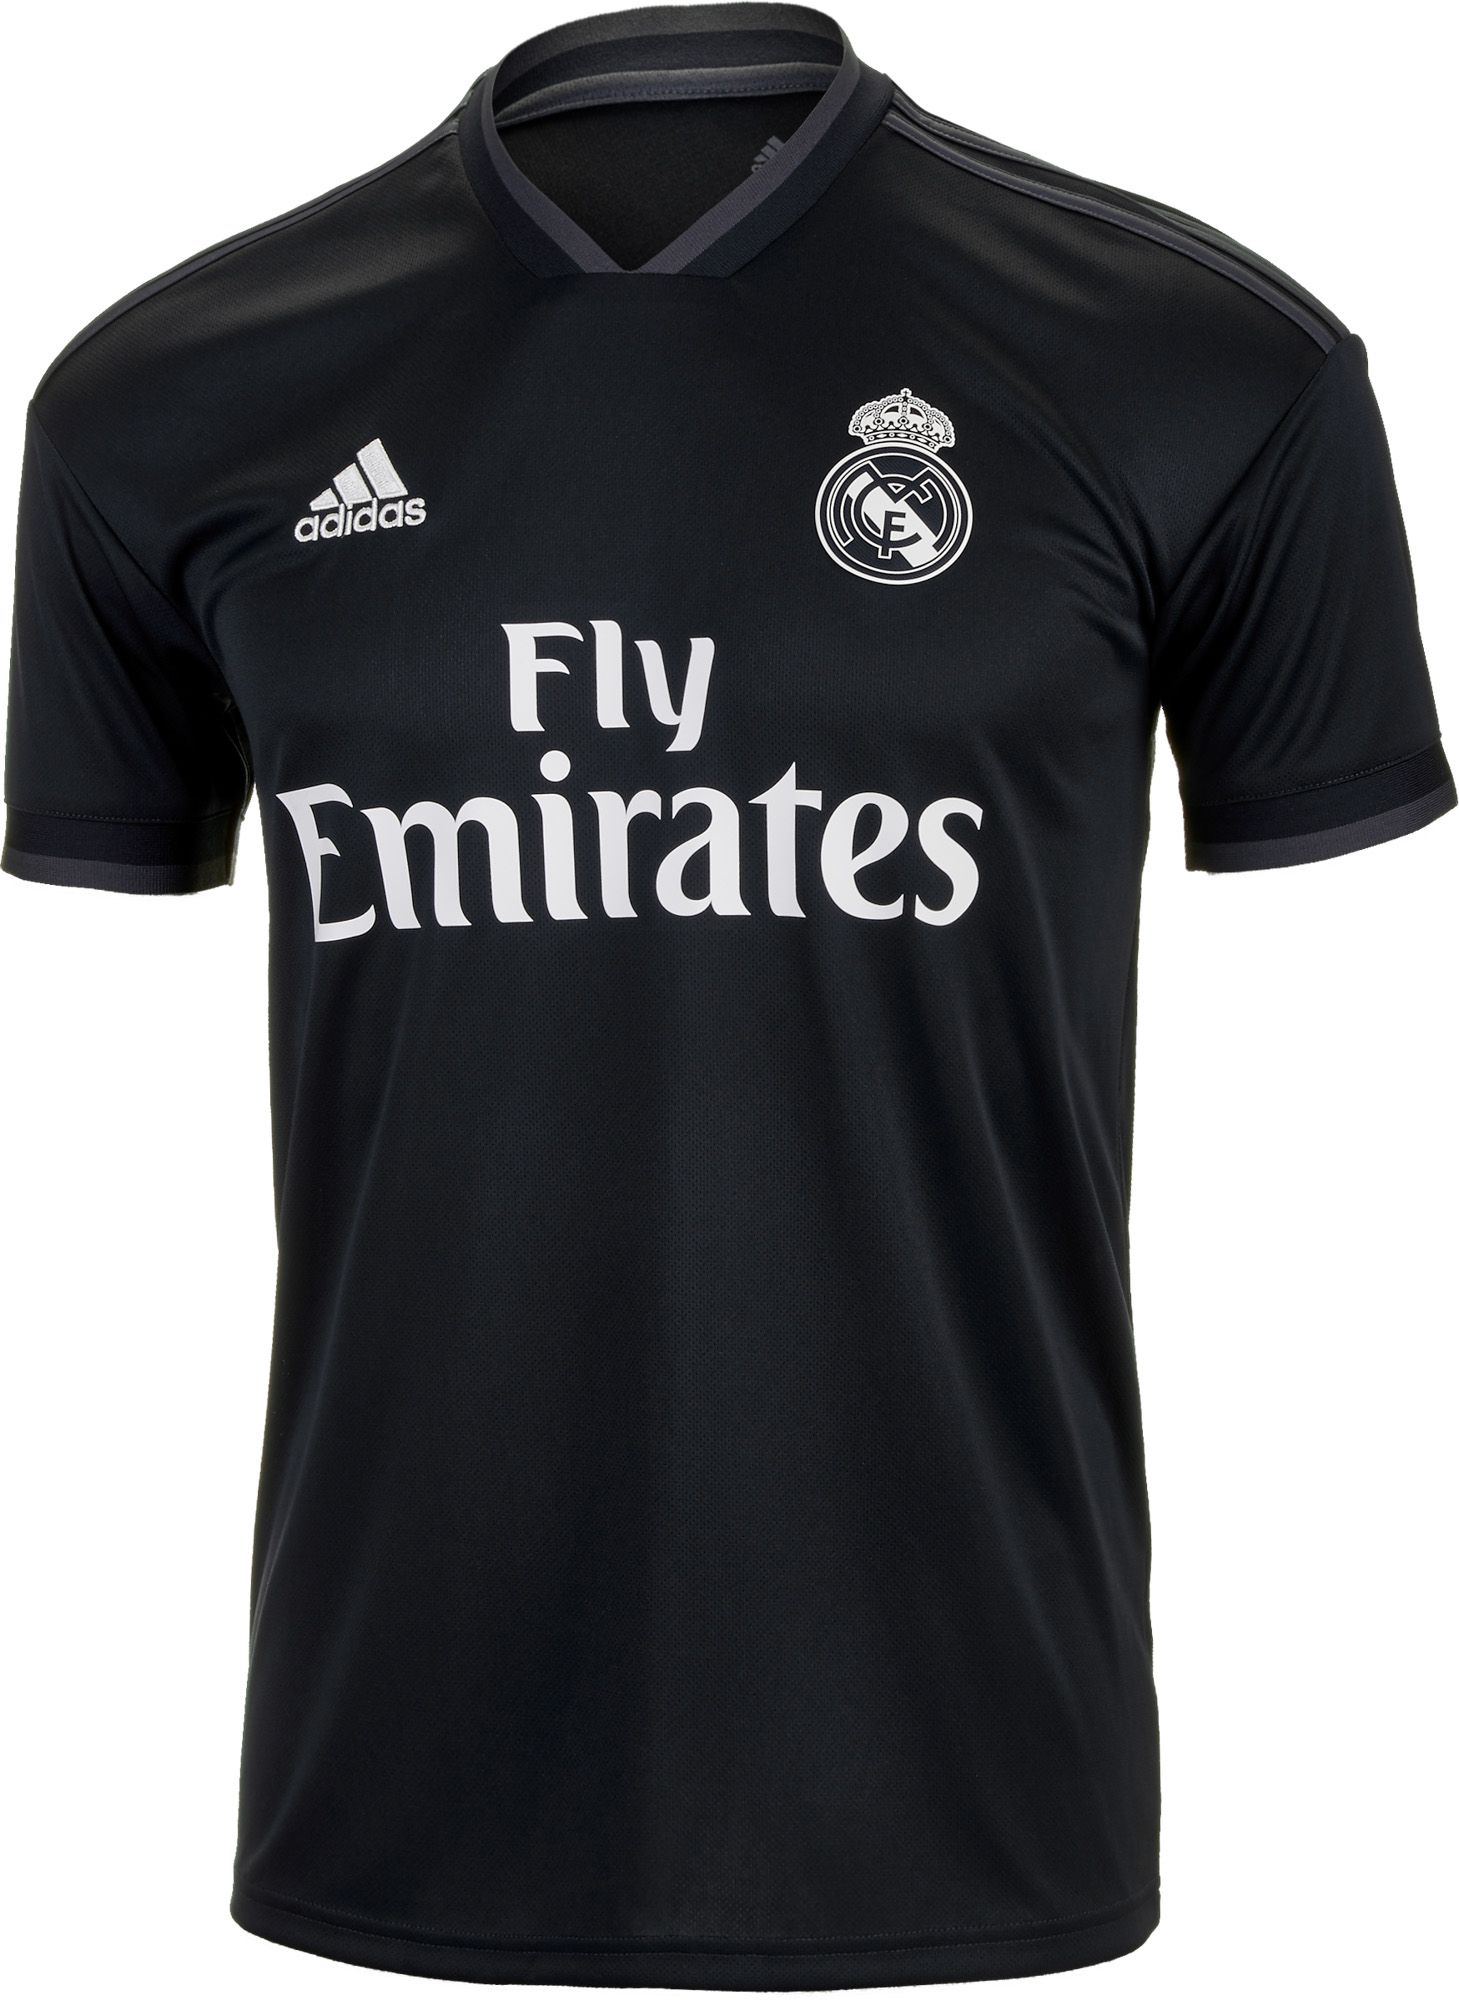 26f58917baa Buy your youth Real Madrid jerseys from www.soccerpro.com